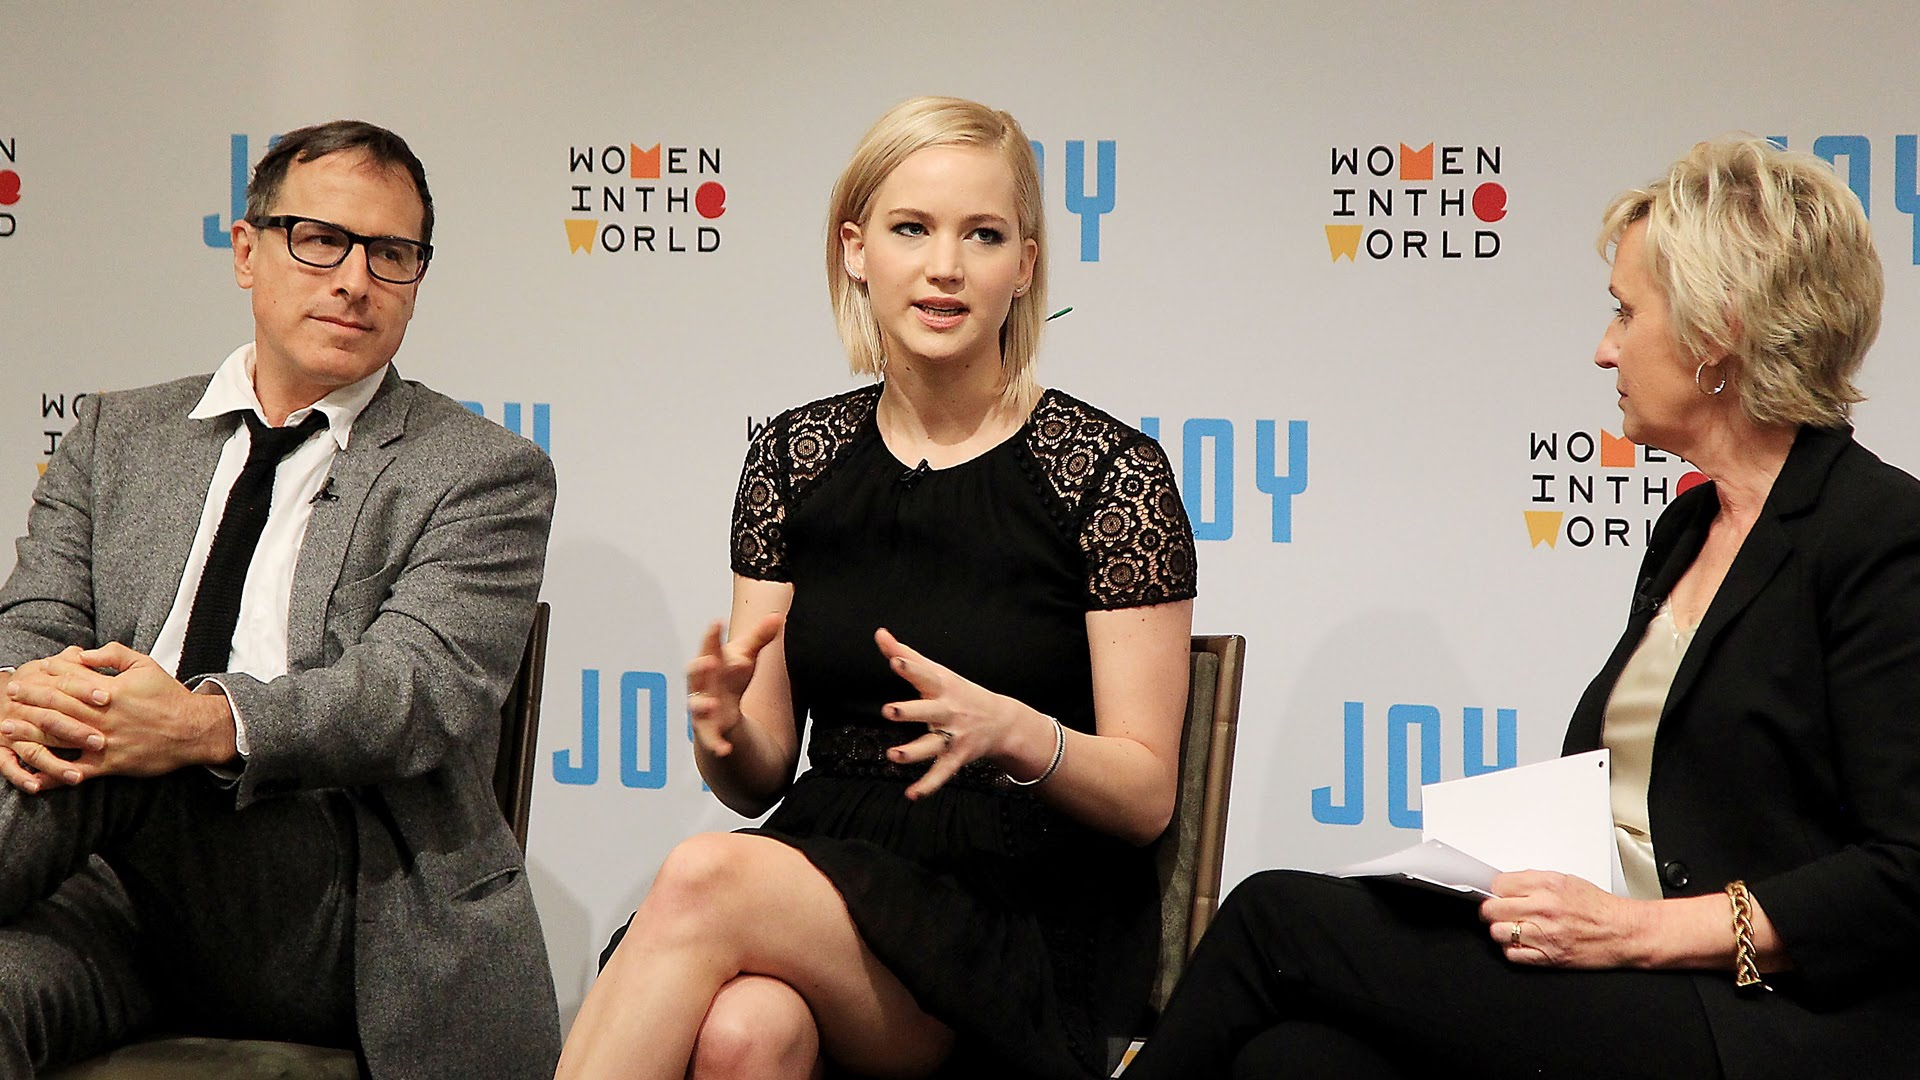 JOY | Women In The World Conversation with David O. Russell & Jennifer Lawrence